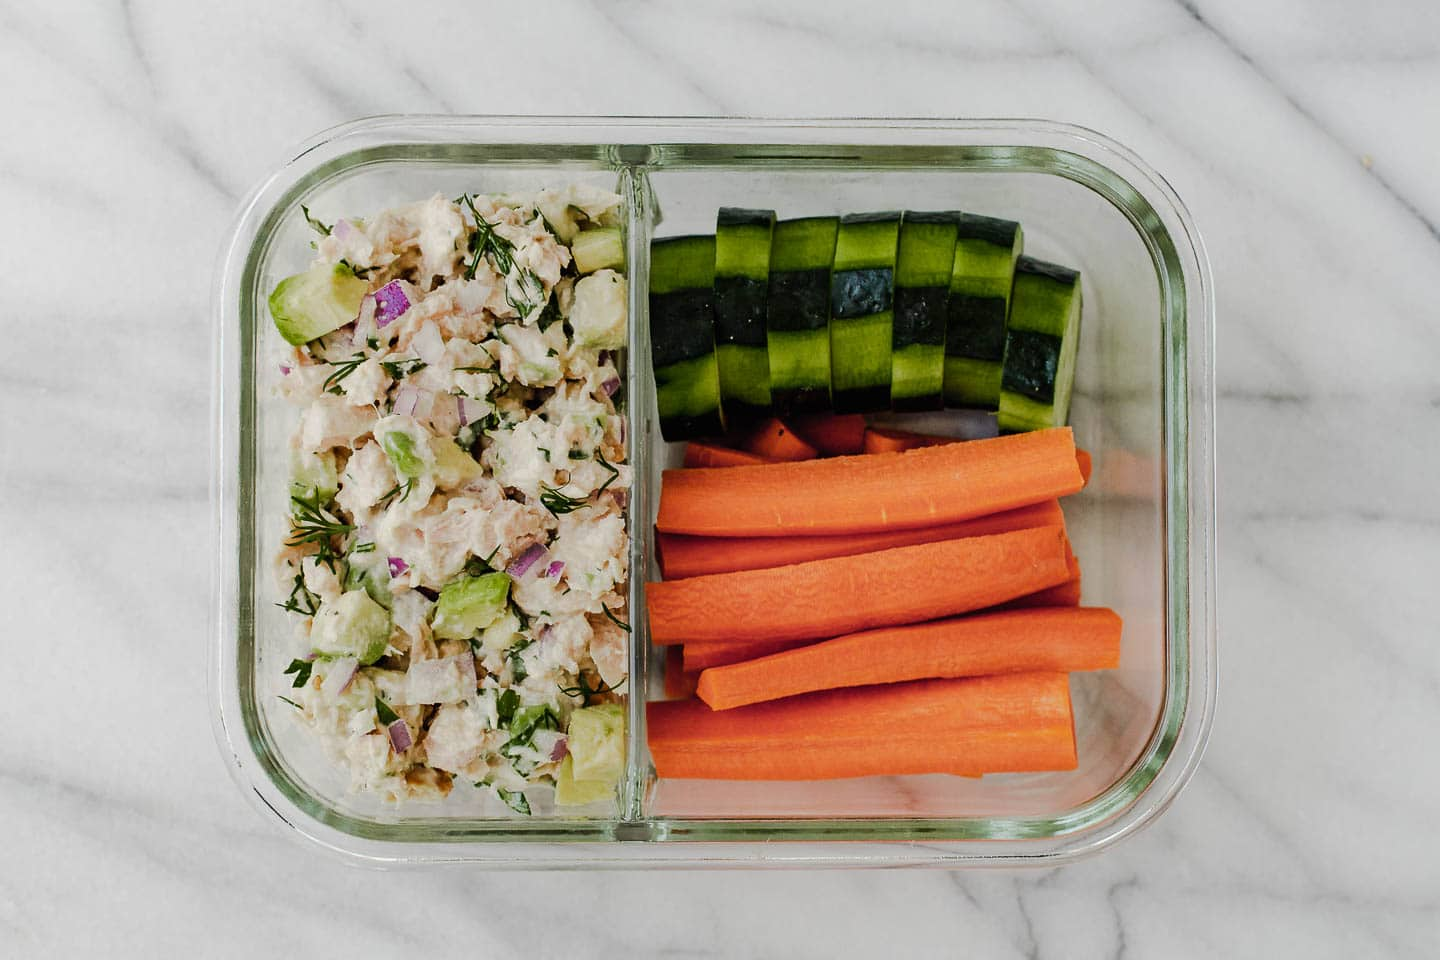 Tuna Salad is perfect for meal prepping healthy lunches! #tunasalad #mealprep #tuna